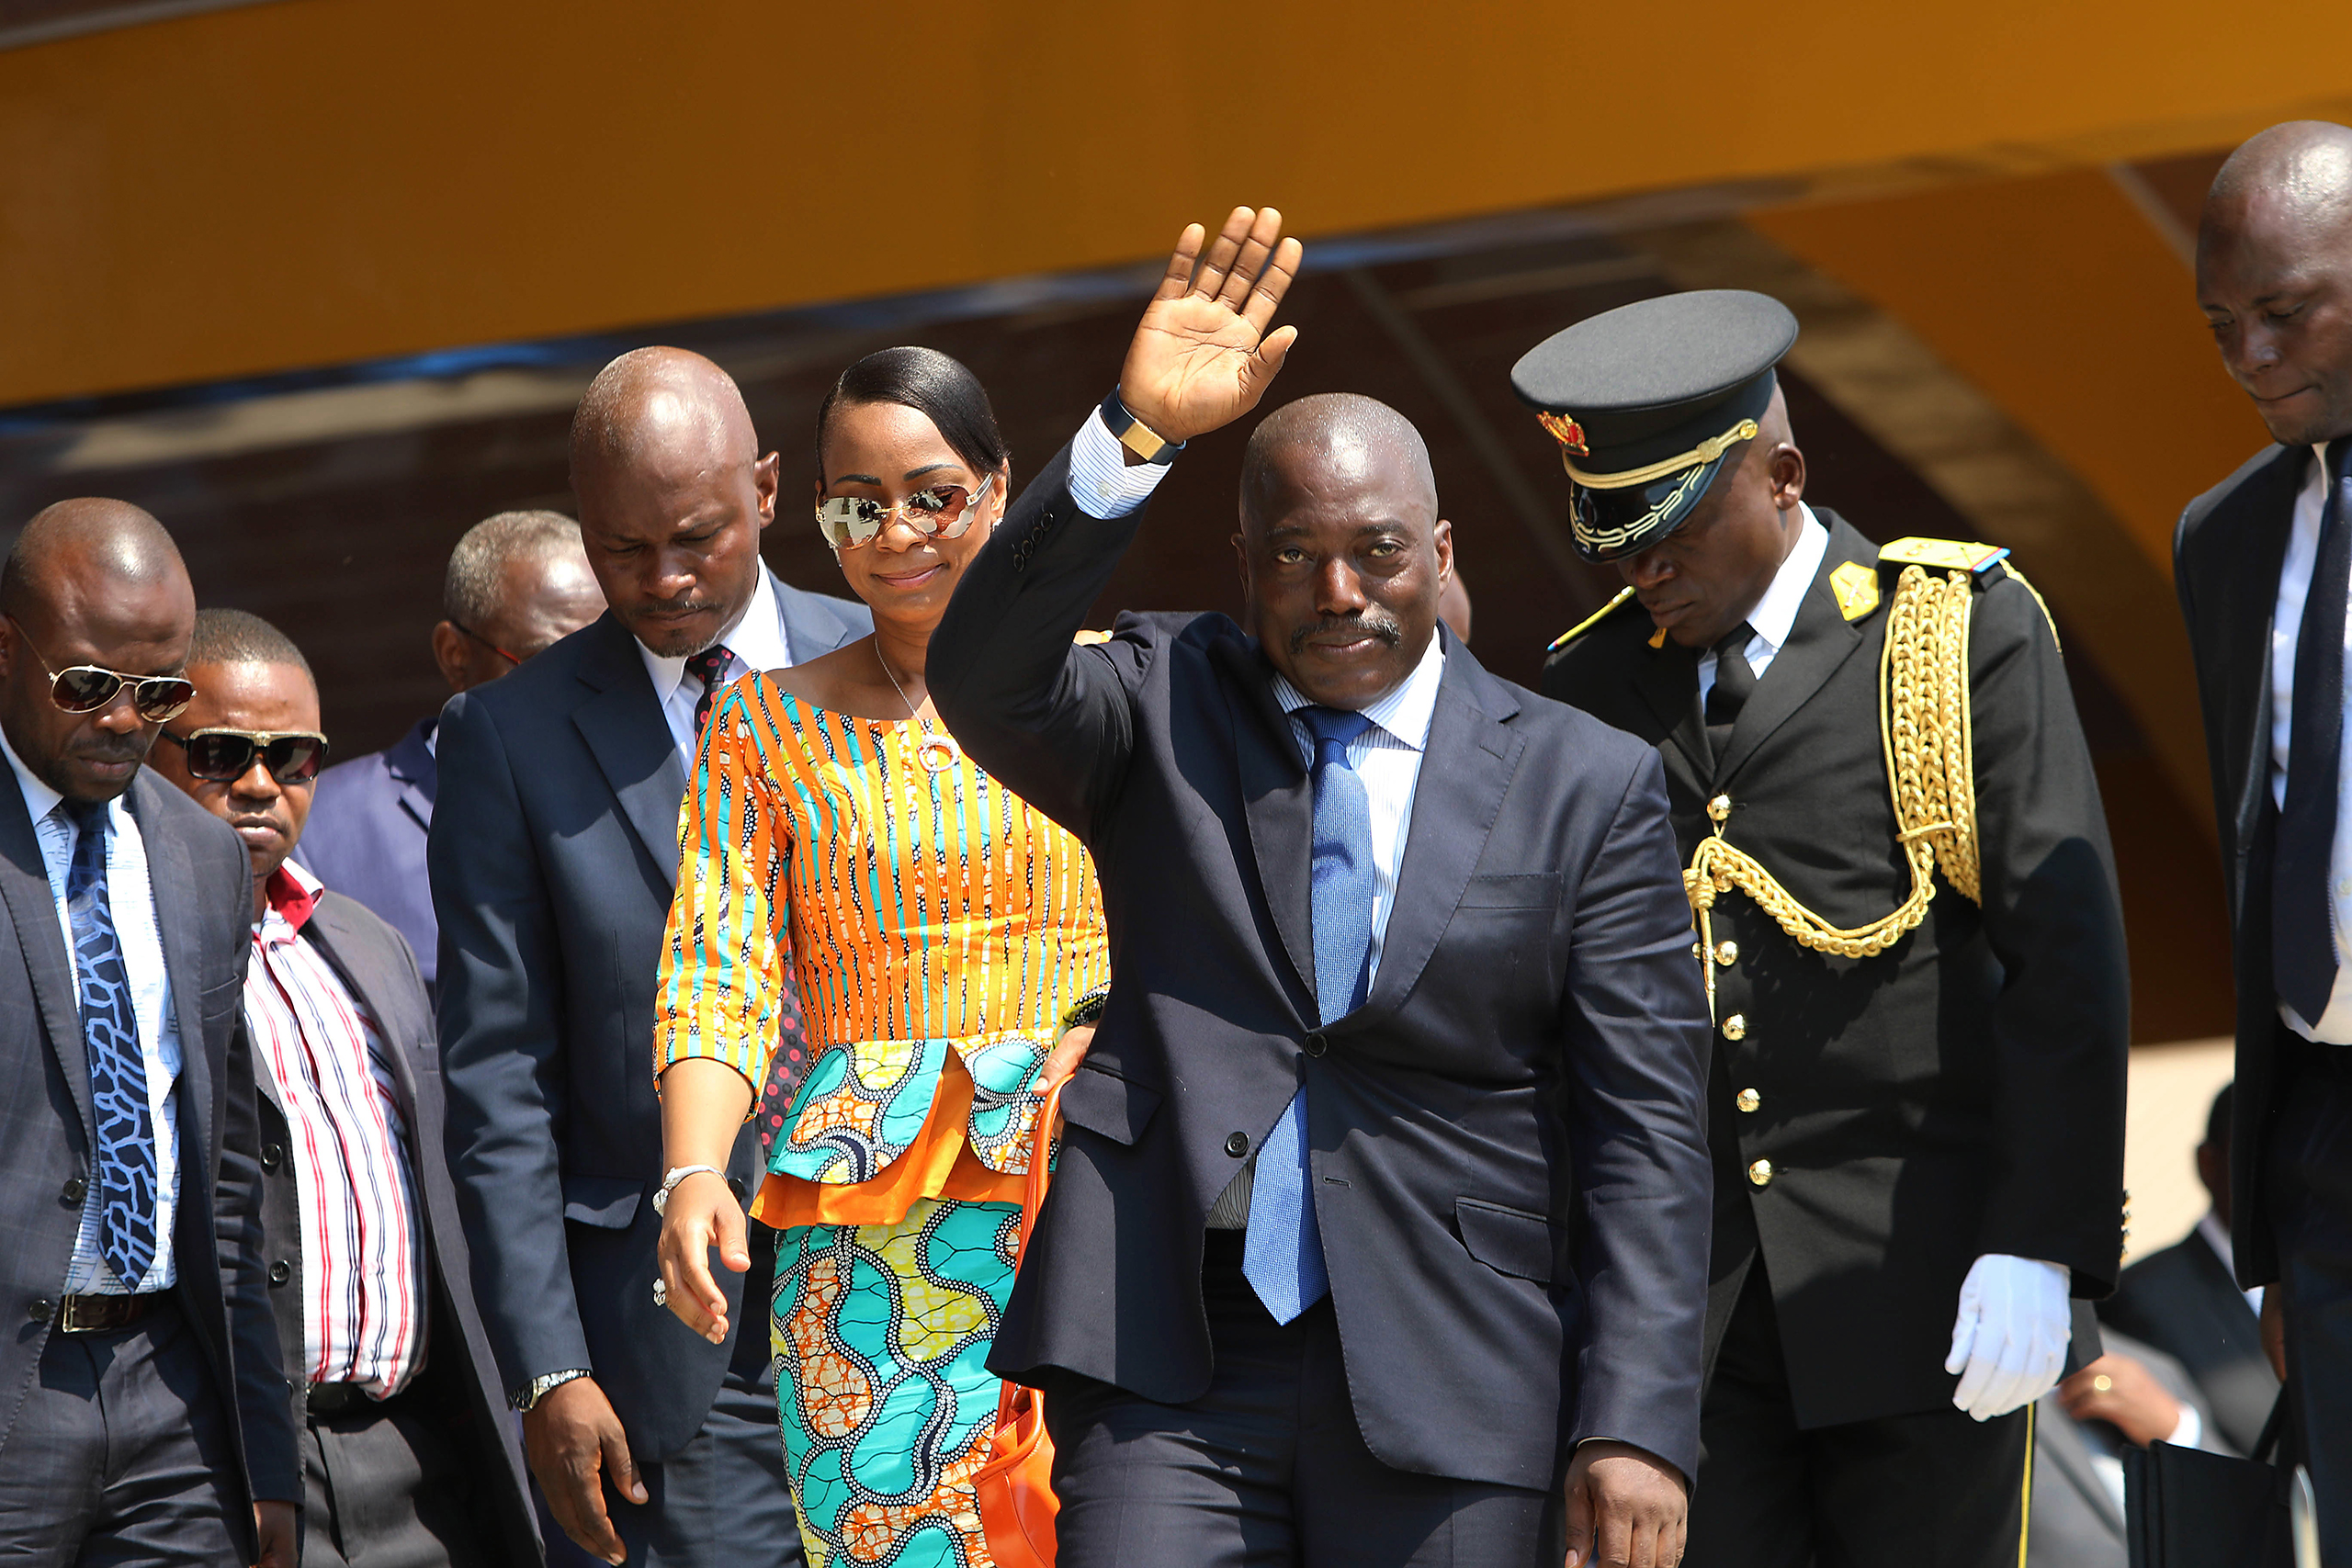 Congolese President Joseph Kabila waves as he and others celebrate the Democratic Republic of Congo, DRC, independence in Kindu, Congo on June 30, 2016.